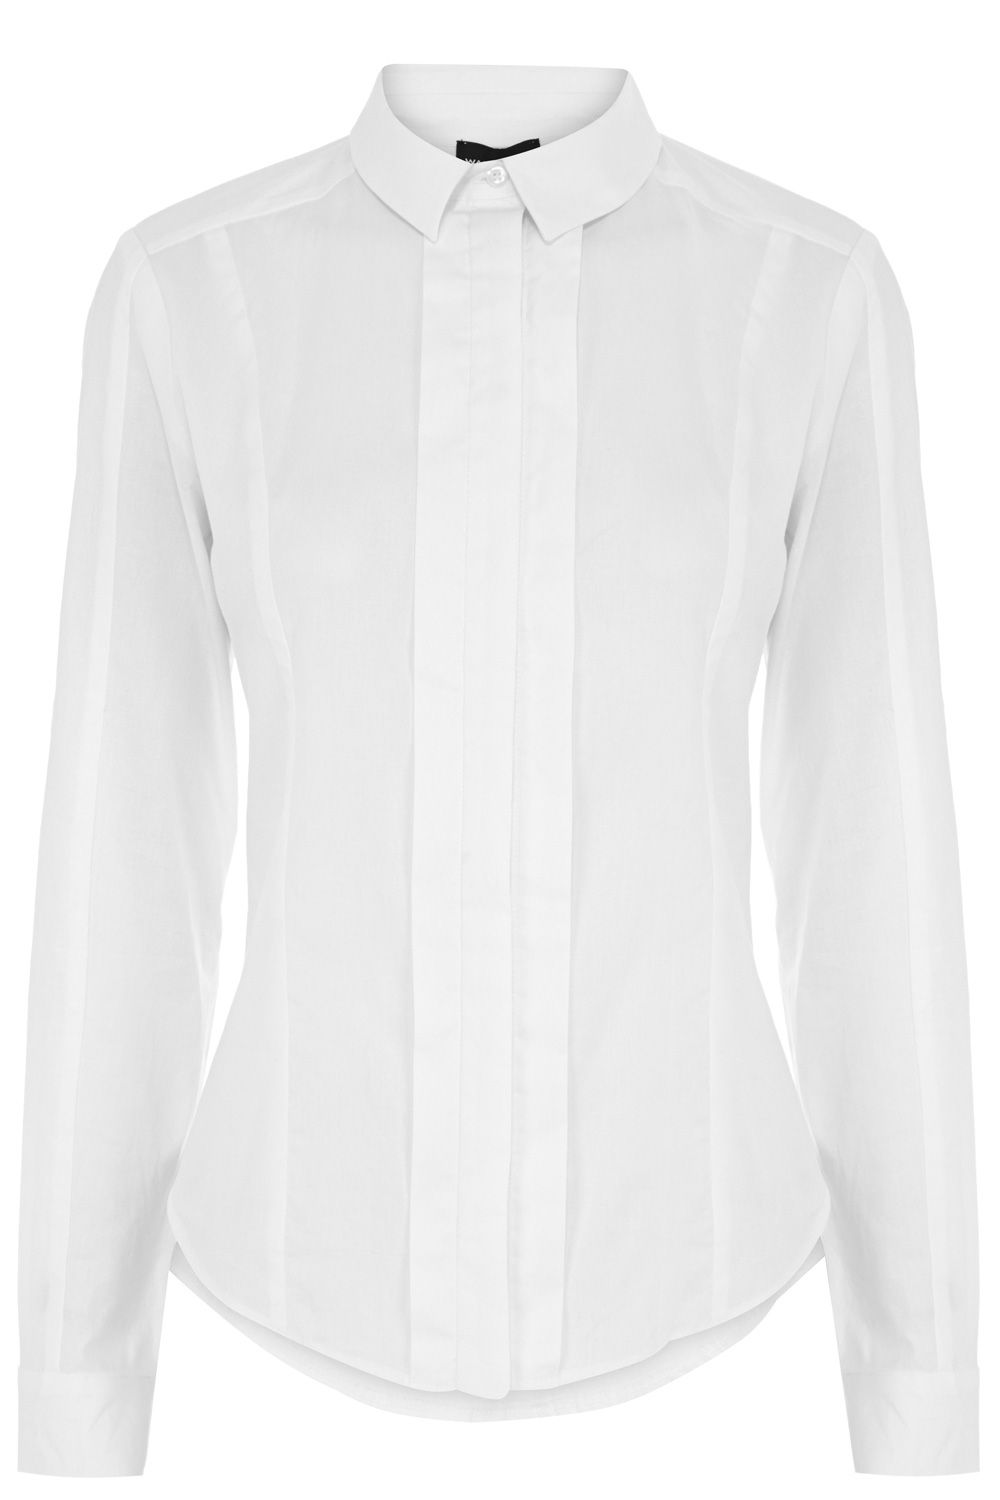 Pleat front clean shirt